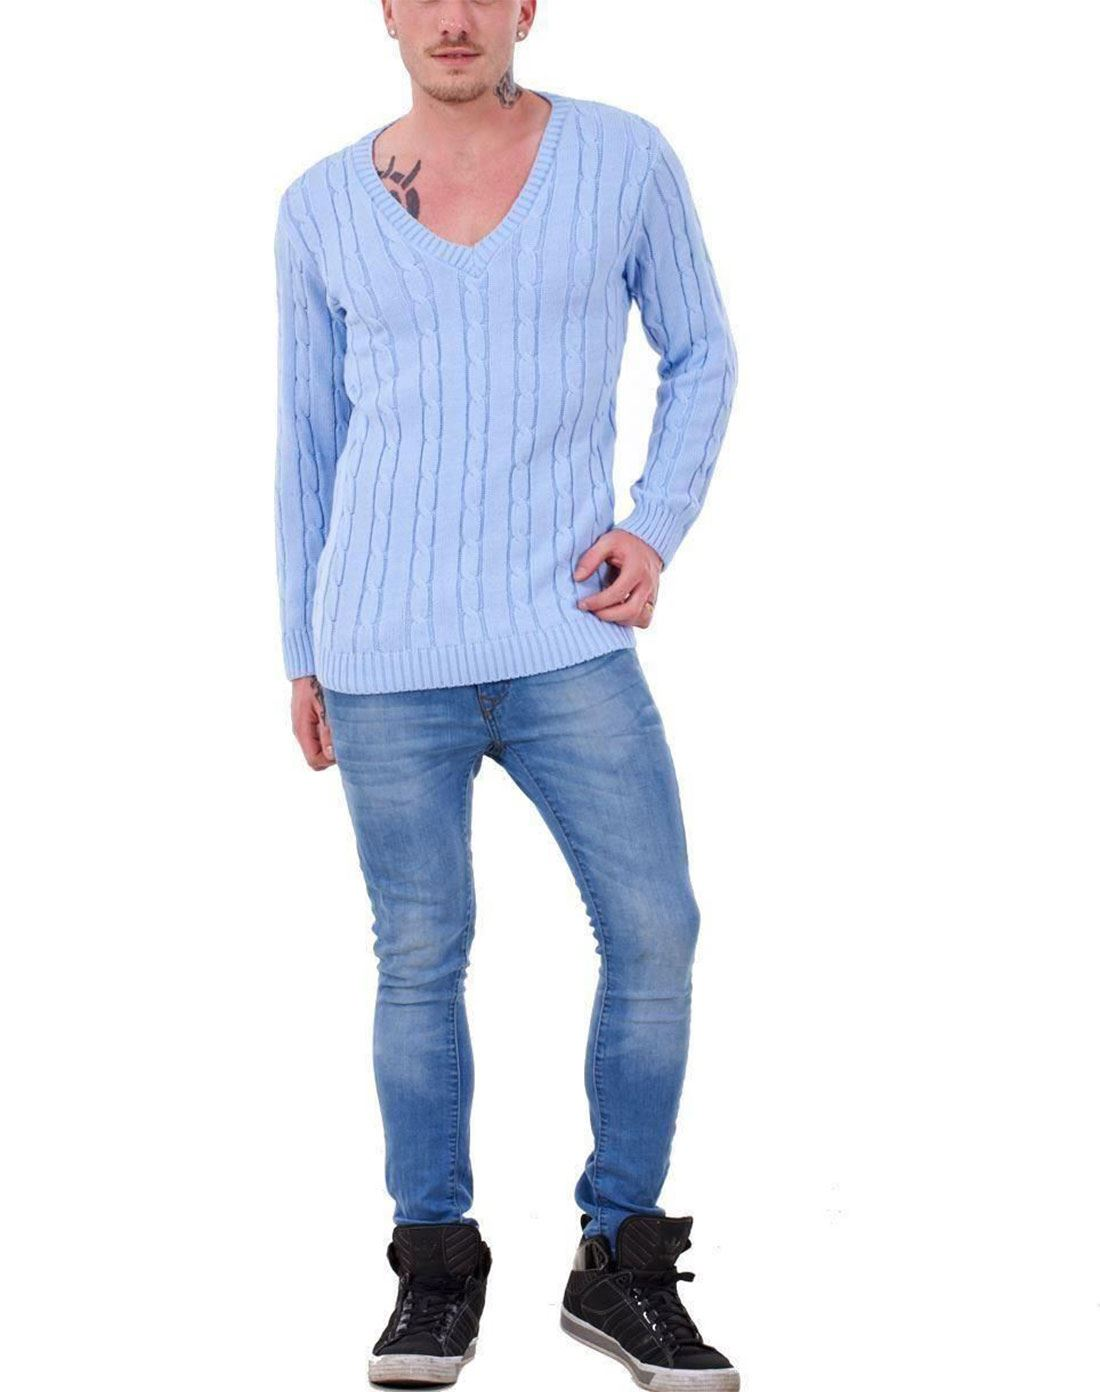 Mens-Long-Sleeve-Chunky-Cable-Knitted-Jumper-Adults-V-Neck-Casual-Sweater-Top